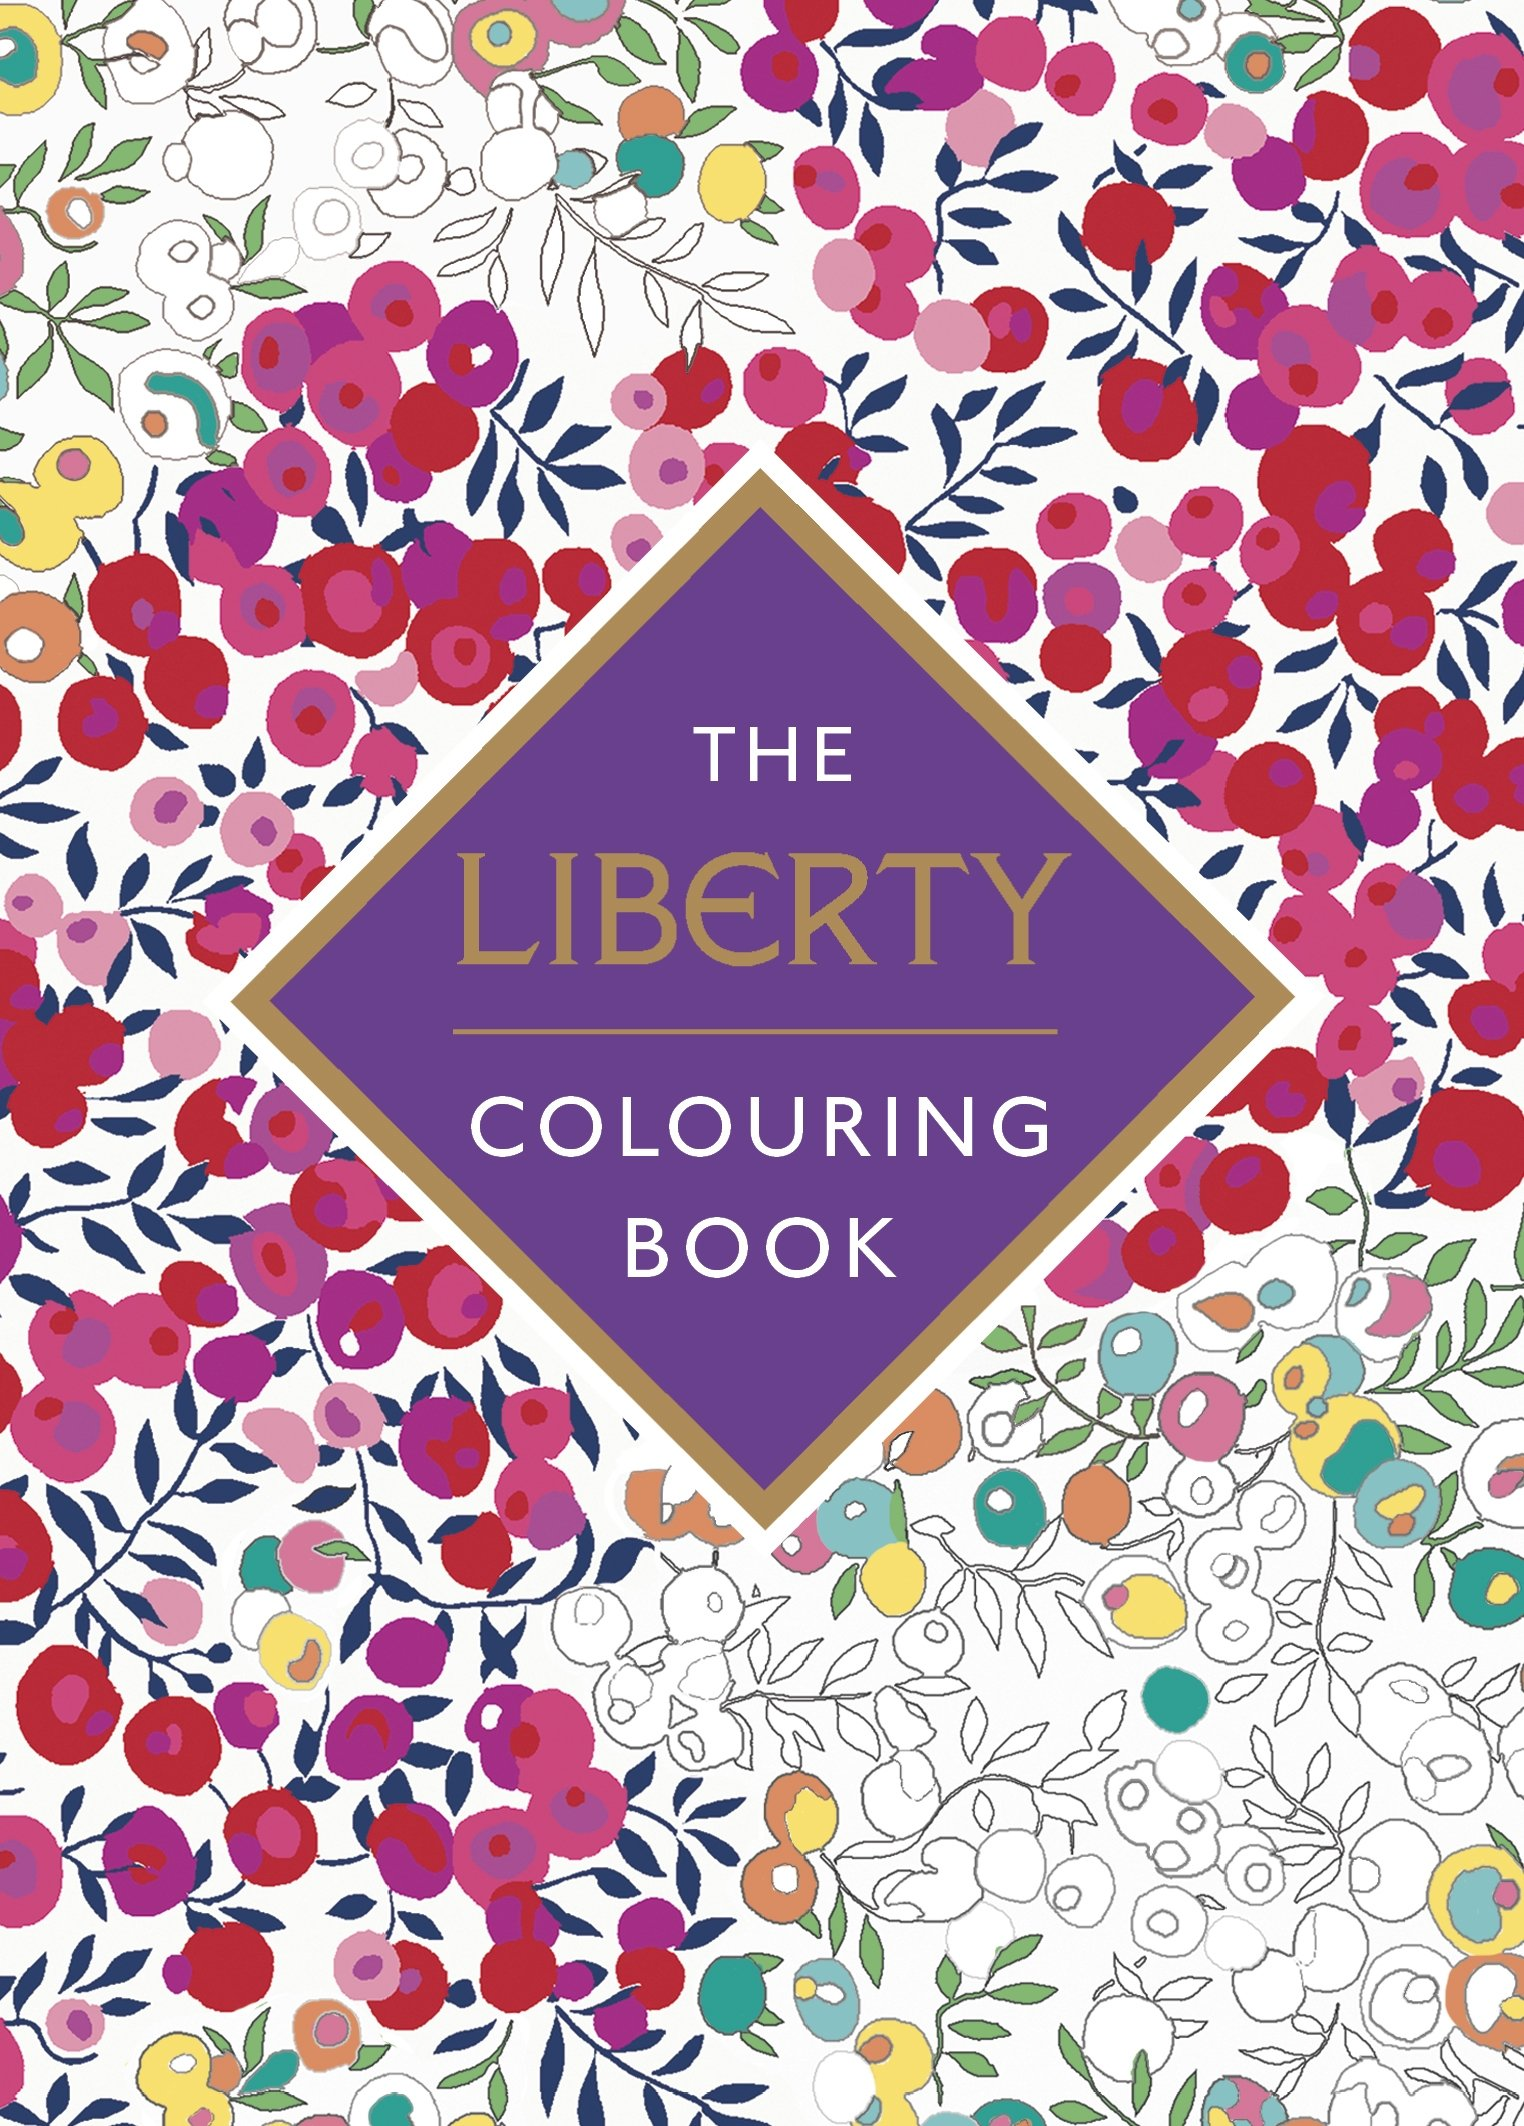 the liberty colouring book amazoncouk liberty 9780241249987 books